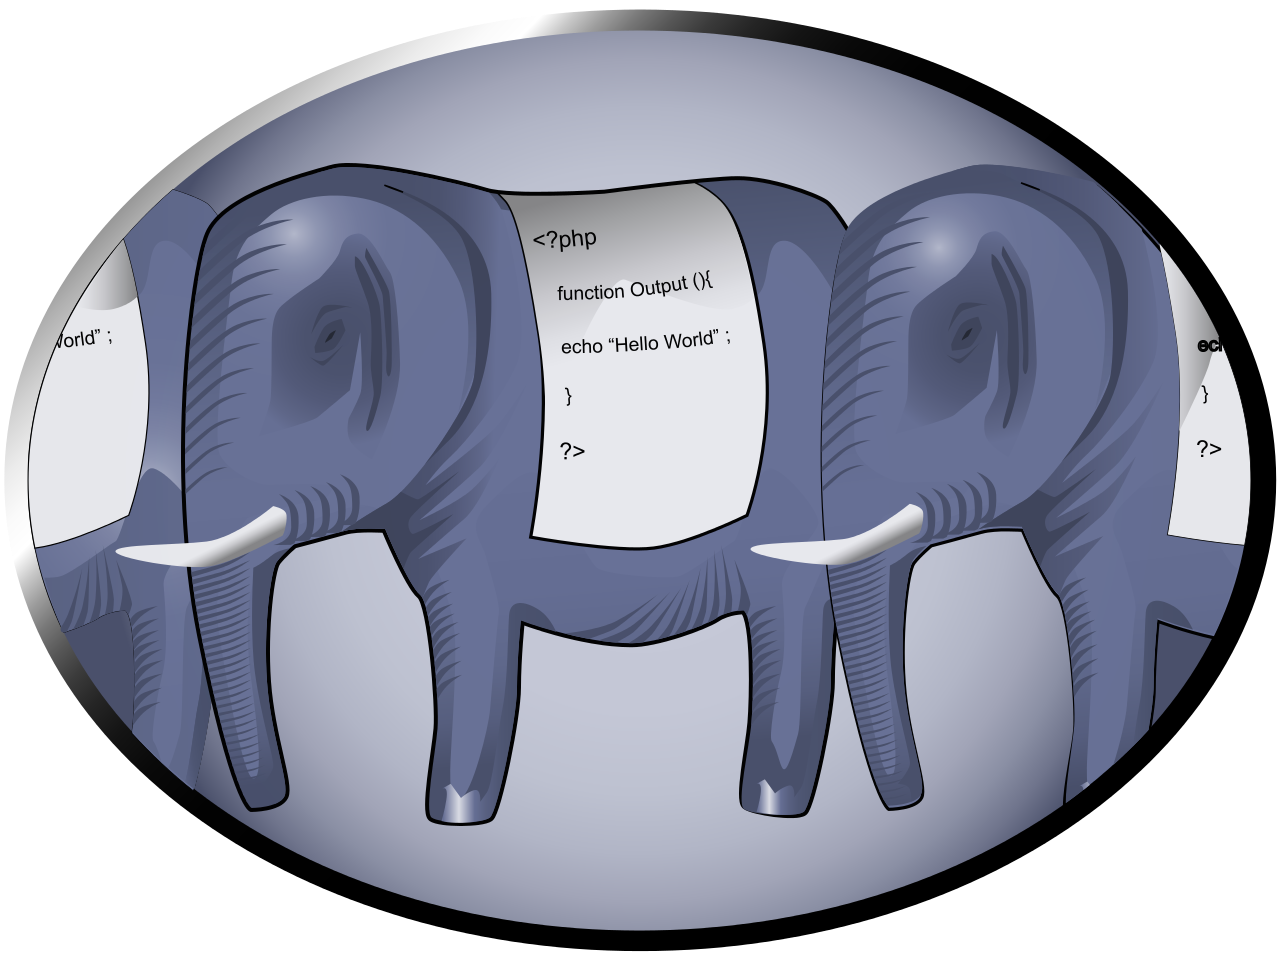 Php vector elephant. File logo svg wikipedia